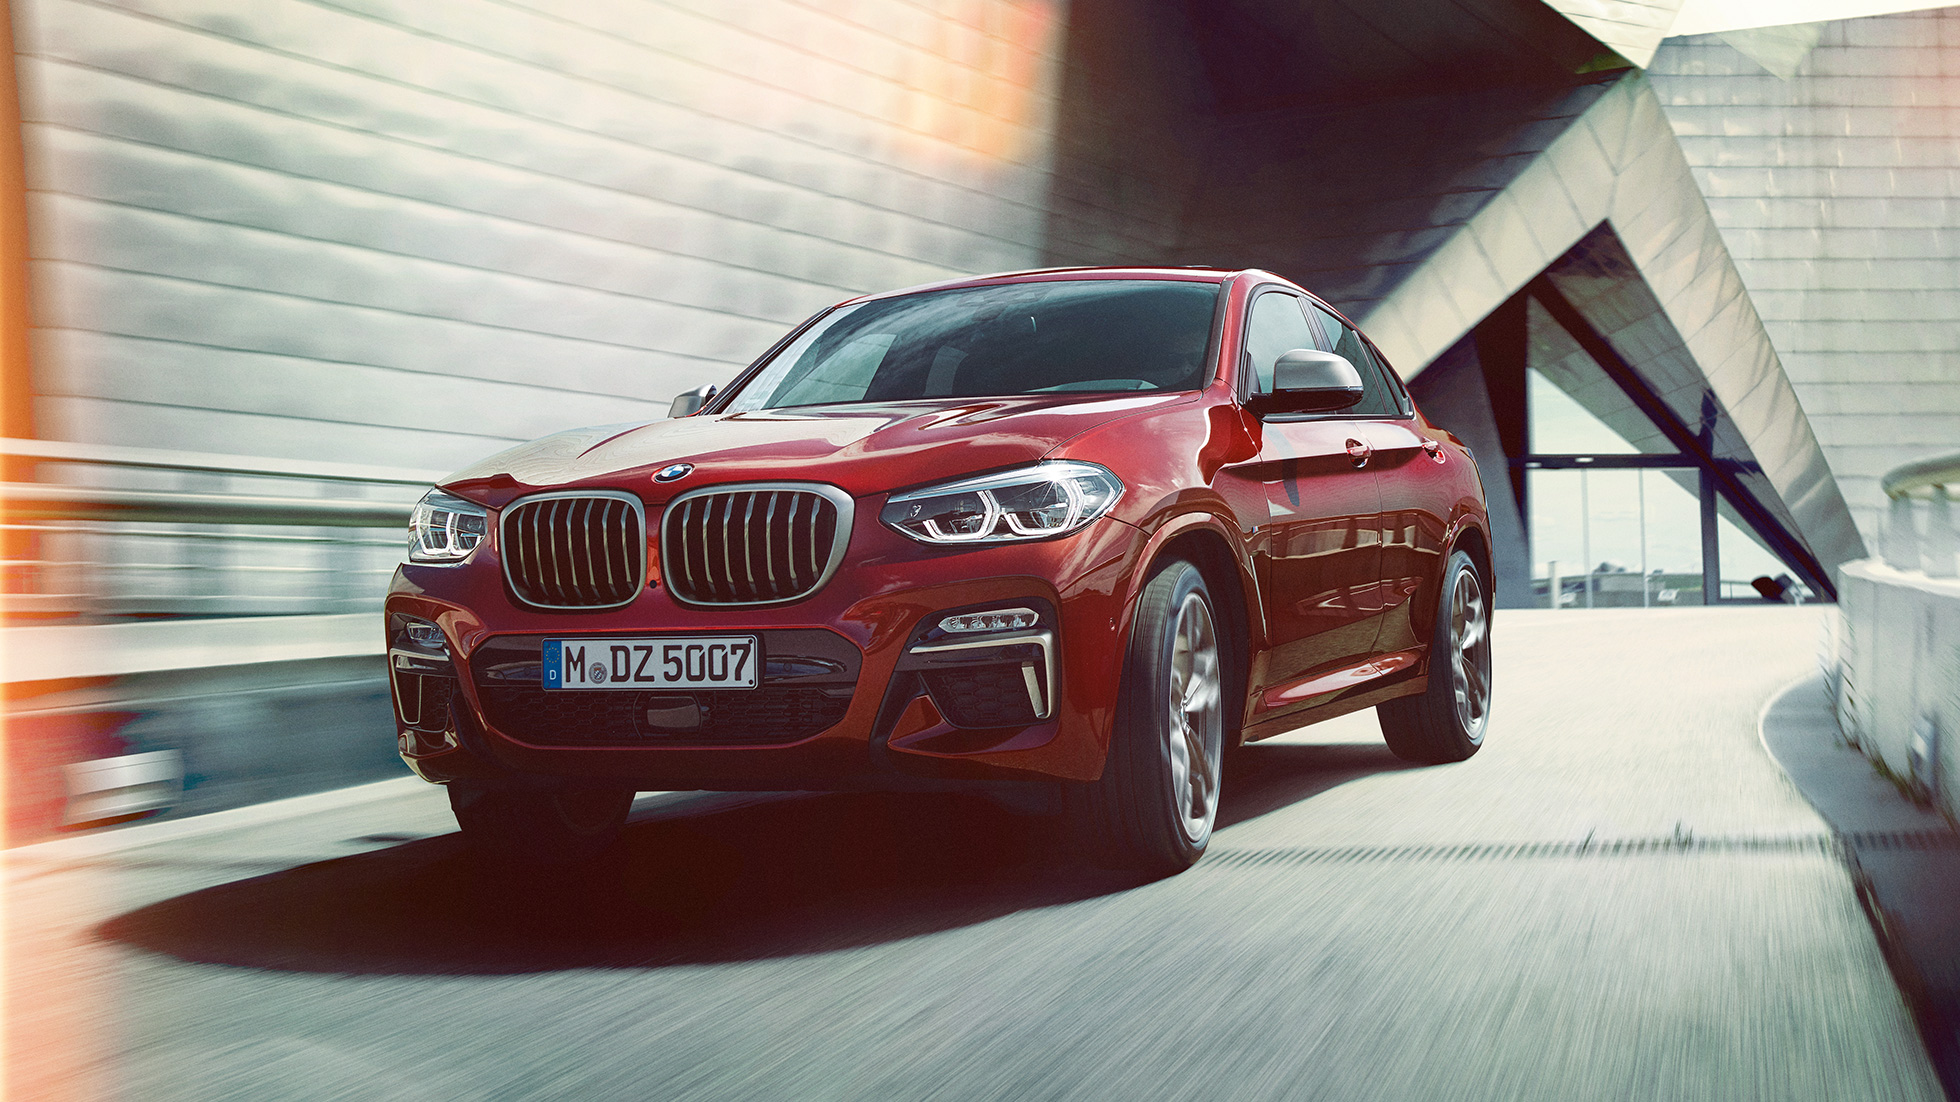 BMW X4 M40i G02 2018 Flamenco Red brilliant effect three-quarter front view